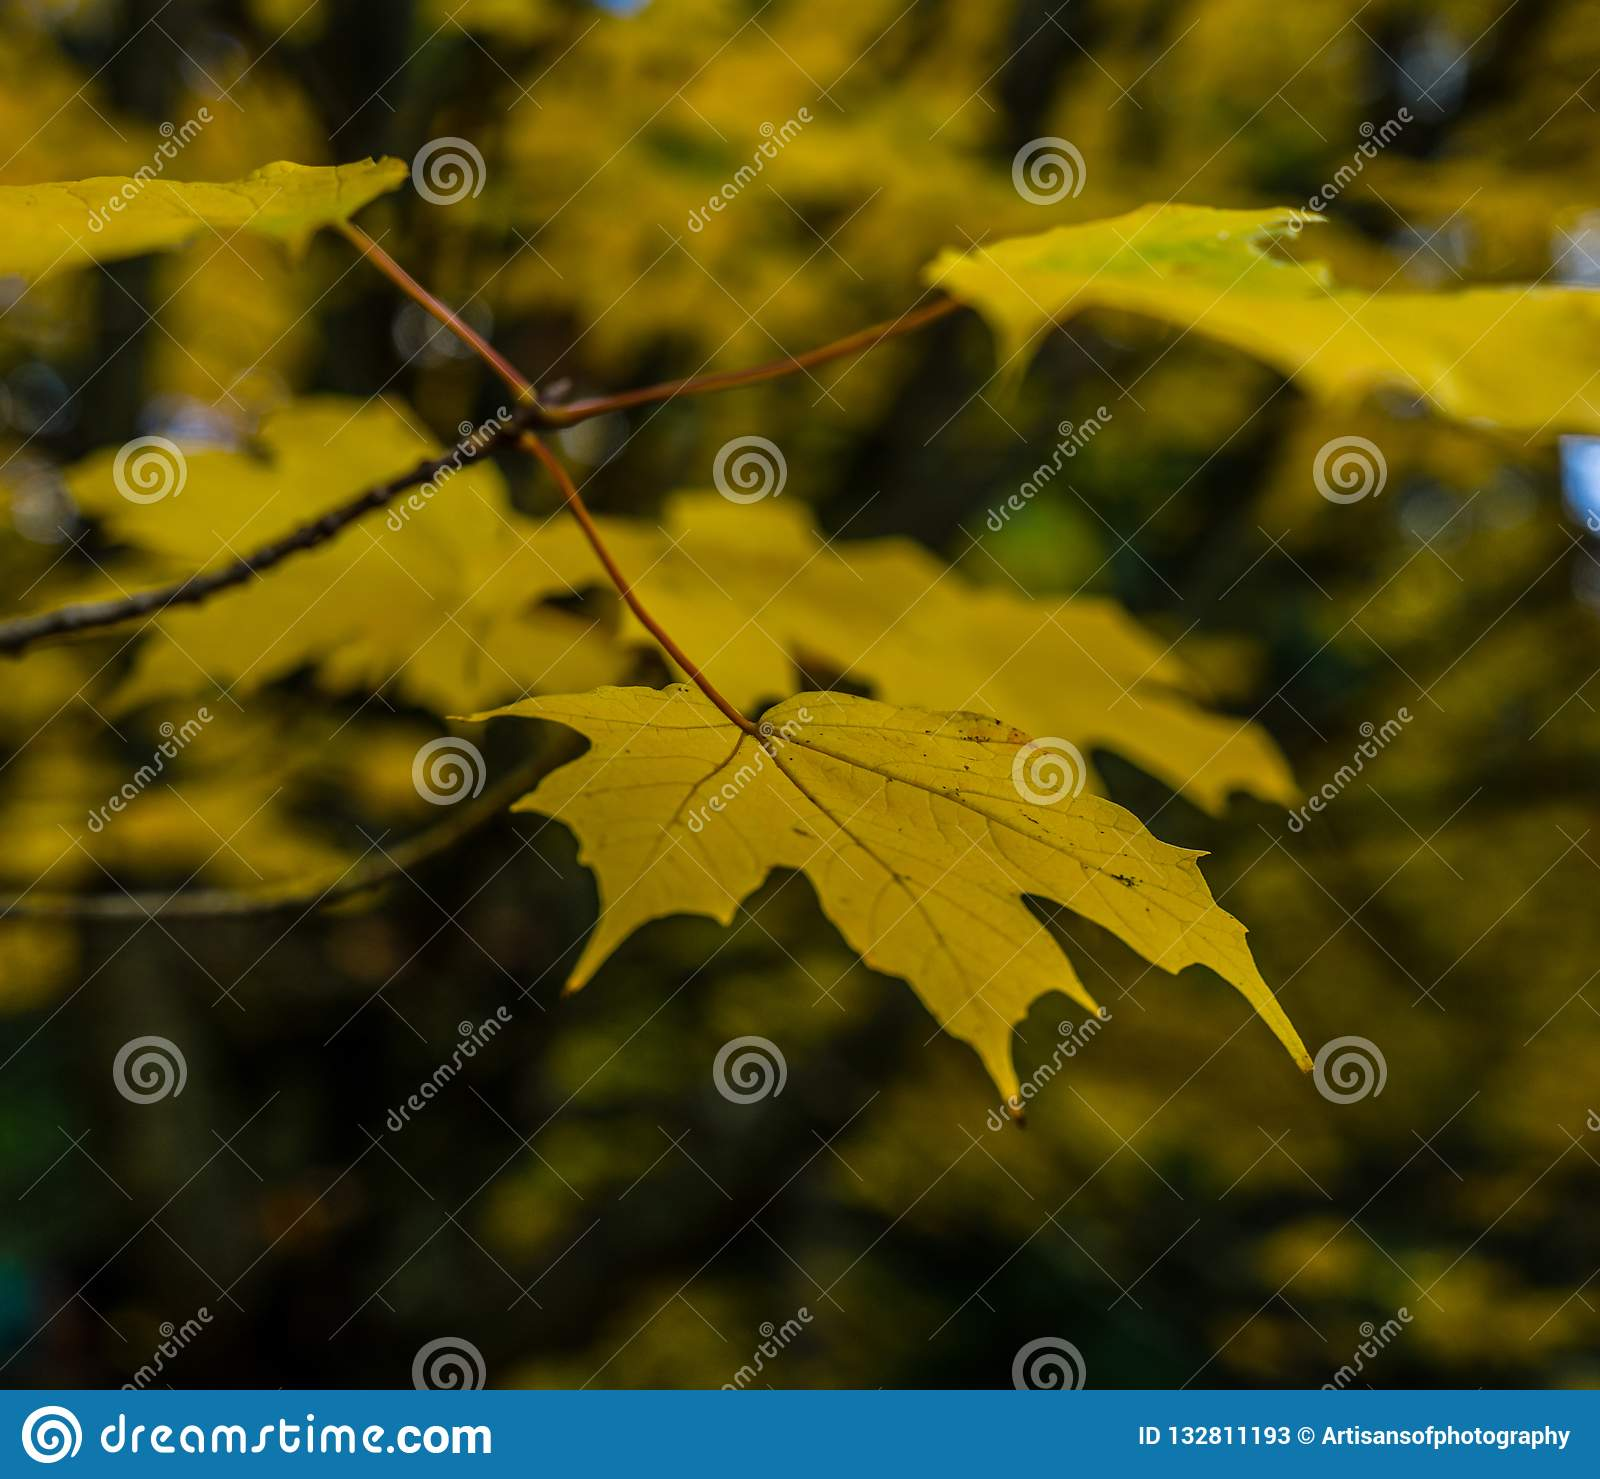 Closeup of yellow maple tree leaf in Autumn / Fall